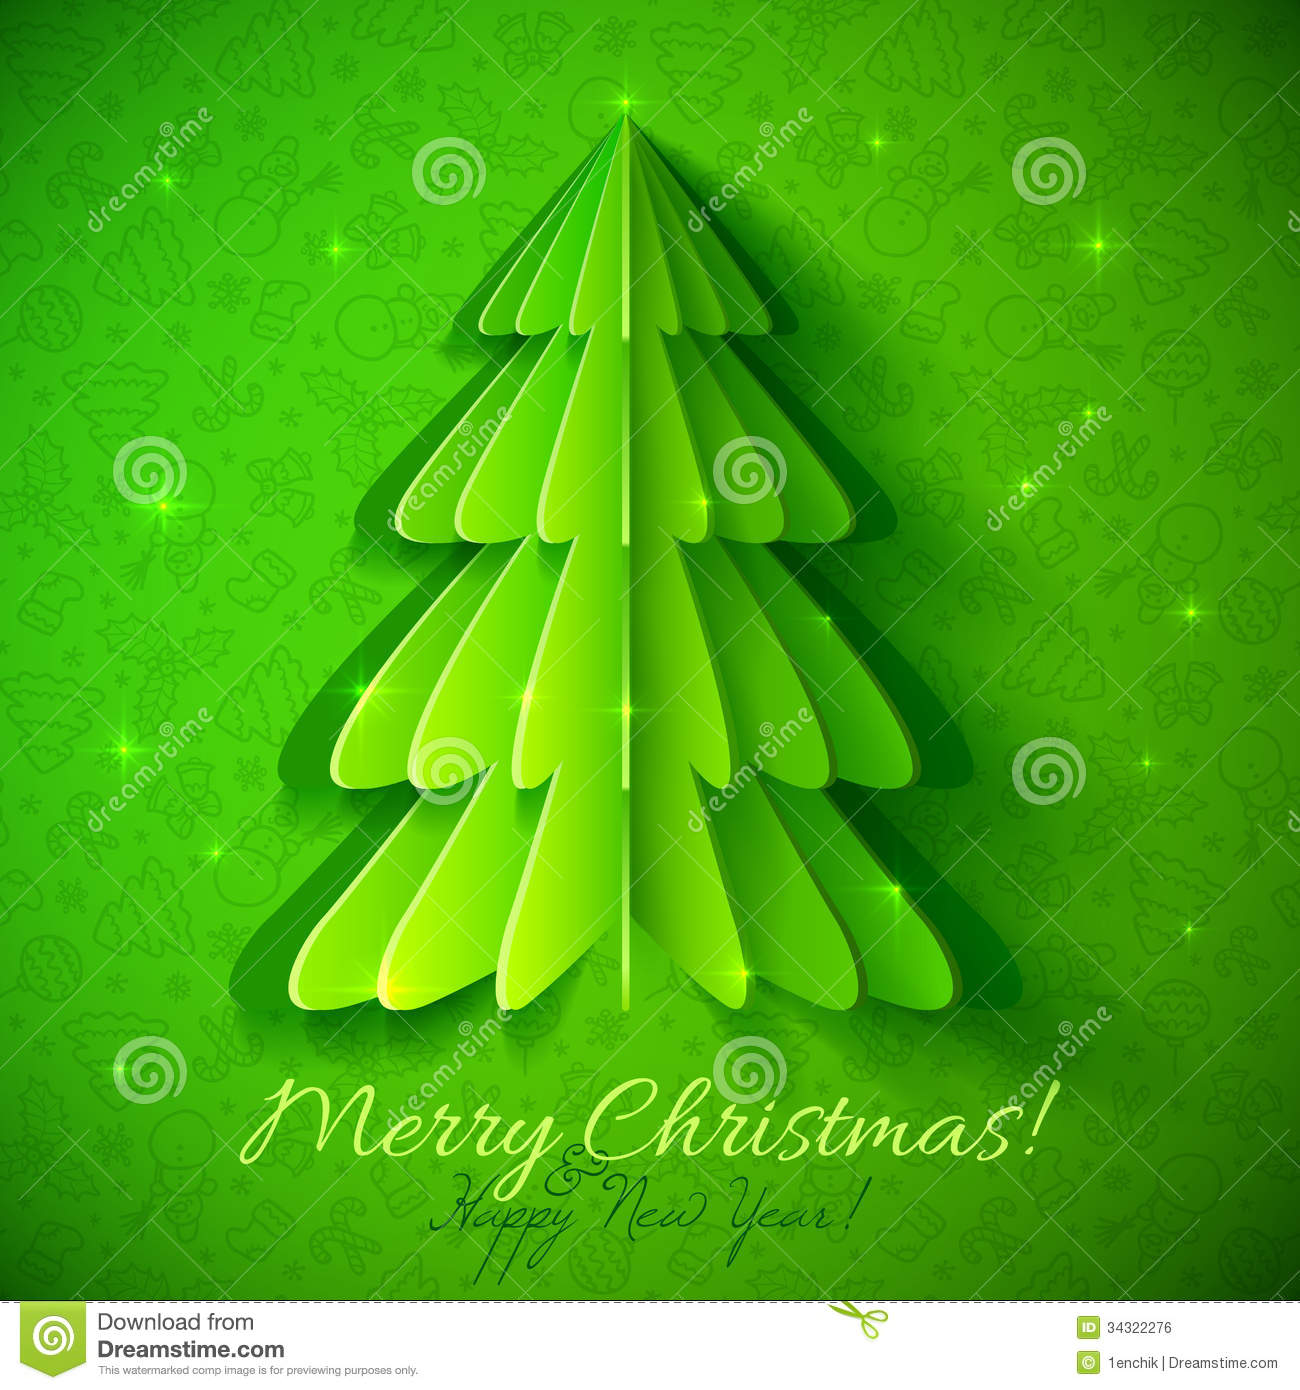 Green Origami Christmas Tree Greeting Card Stock Vector